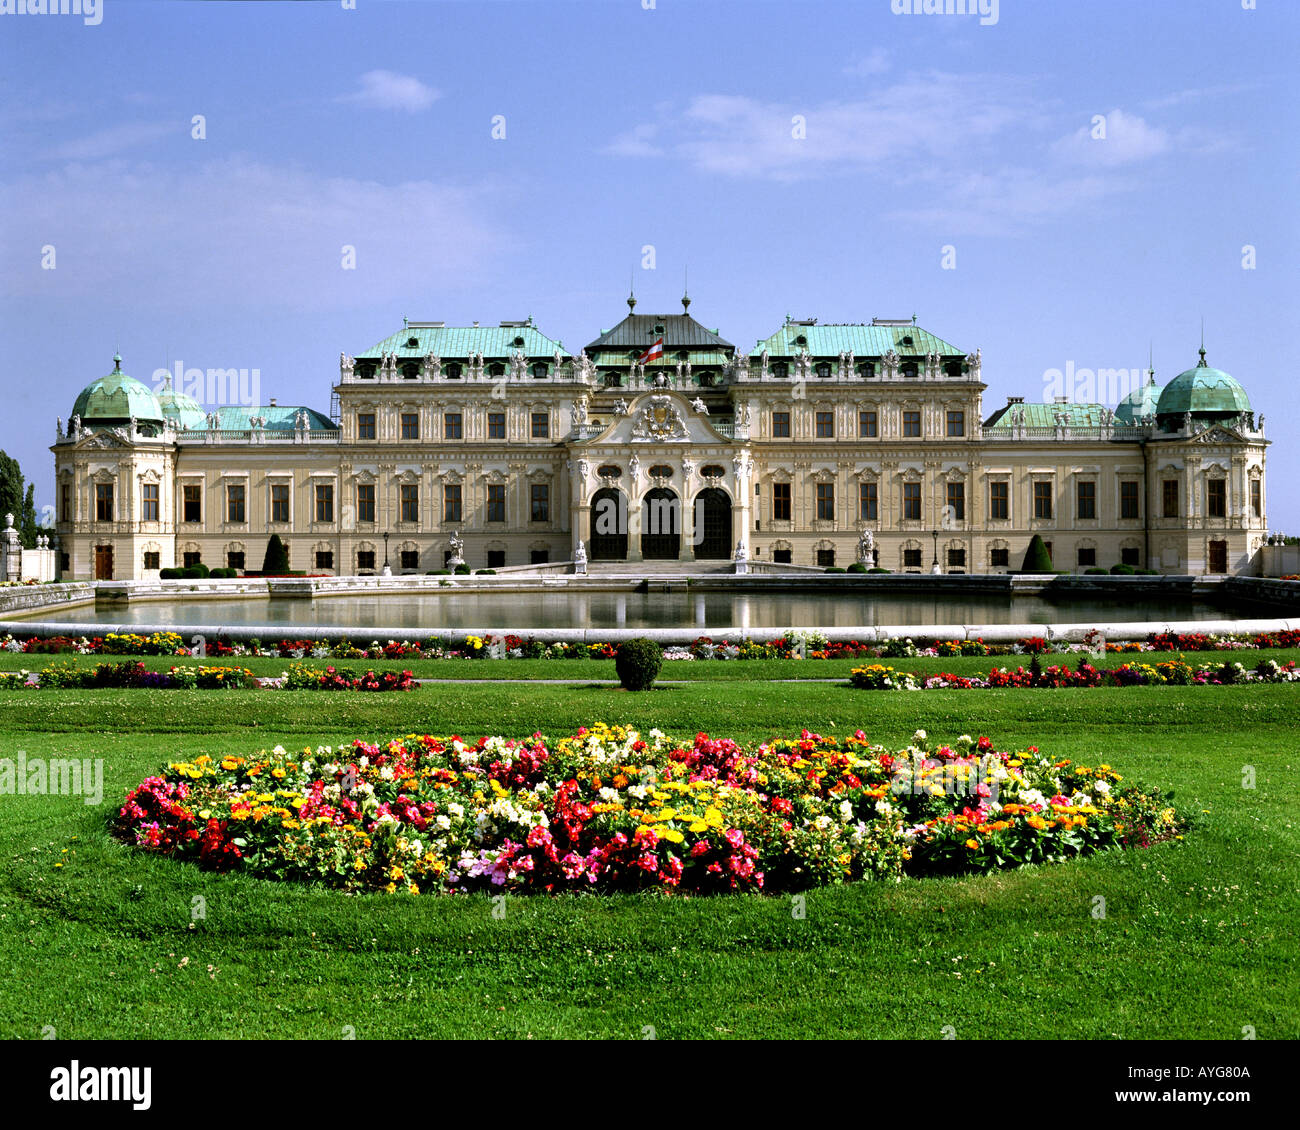 AT - VIENNA: Belvedere Palace and Gardens - Stock Image